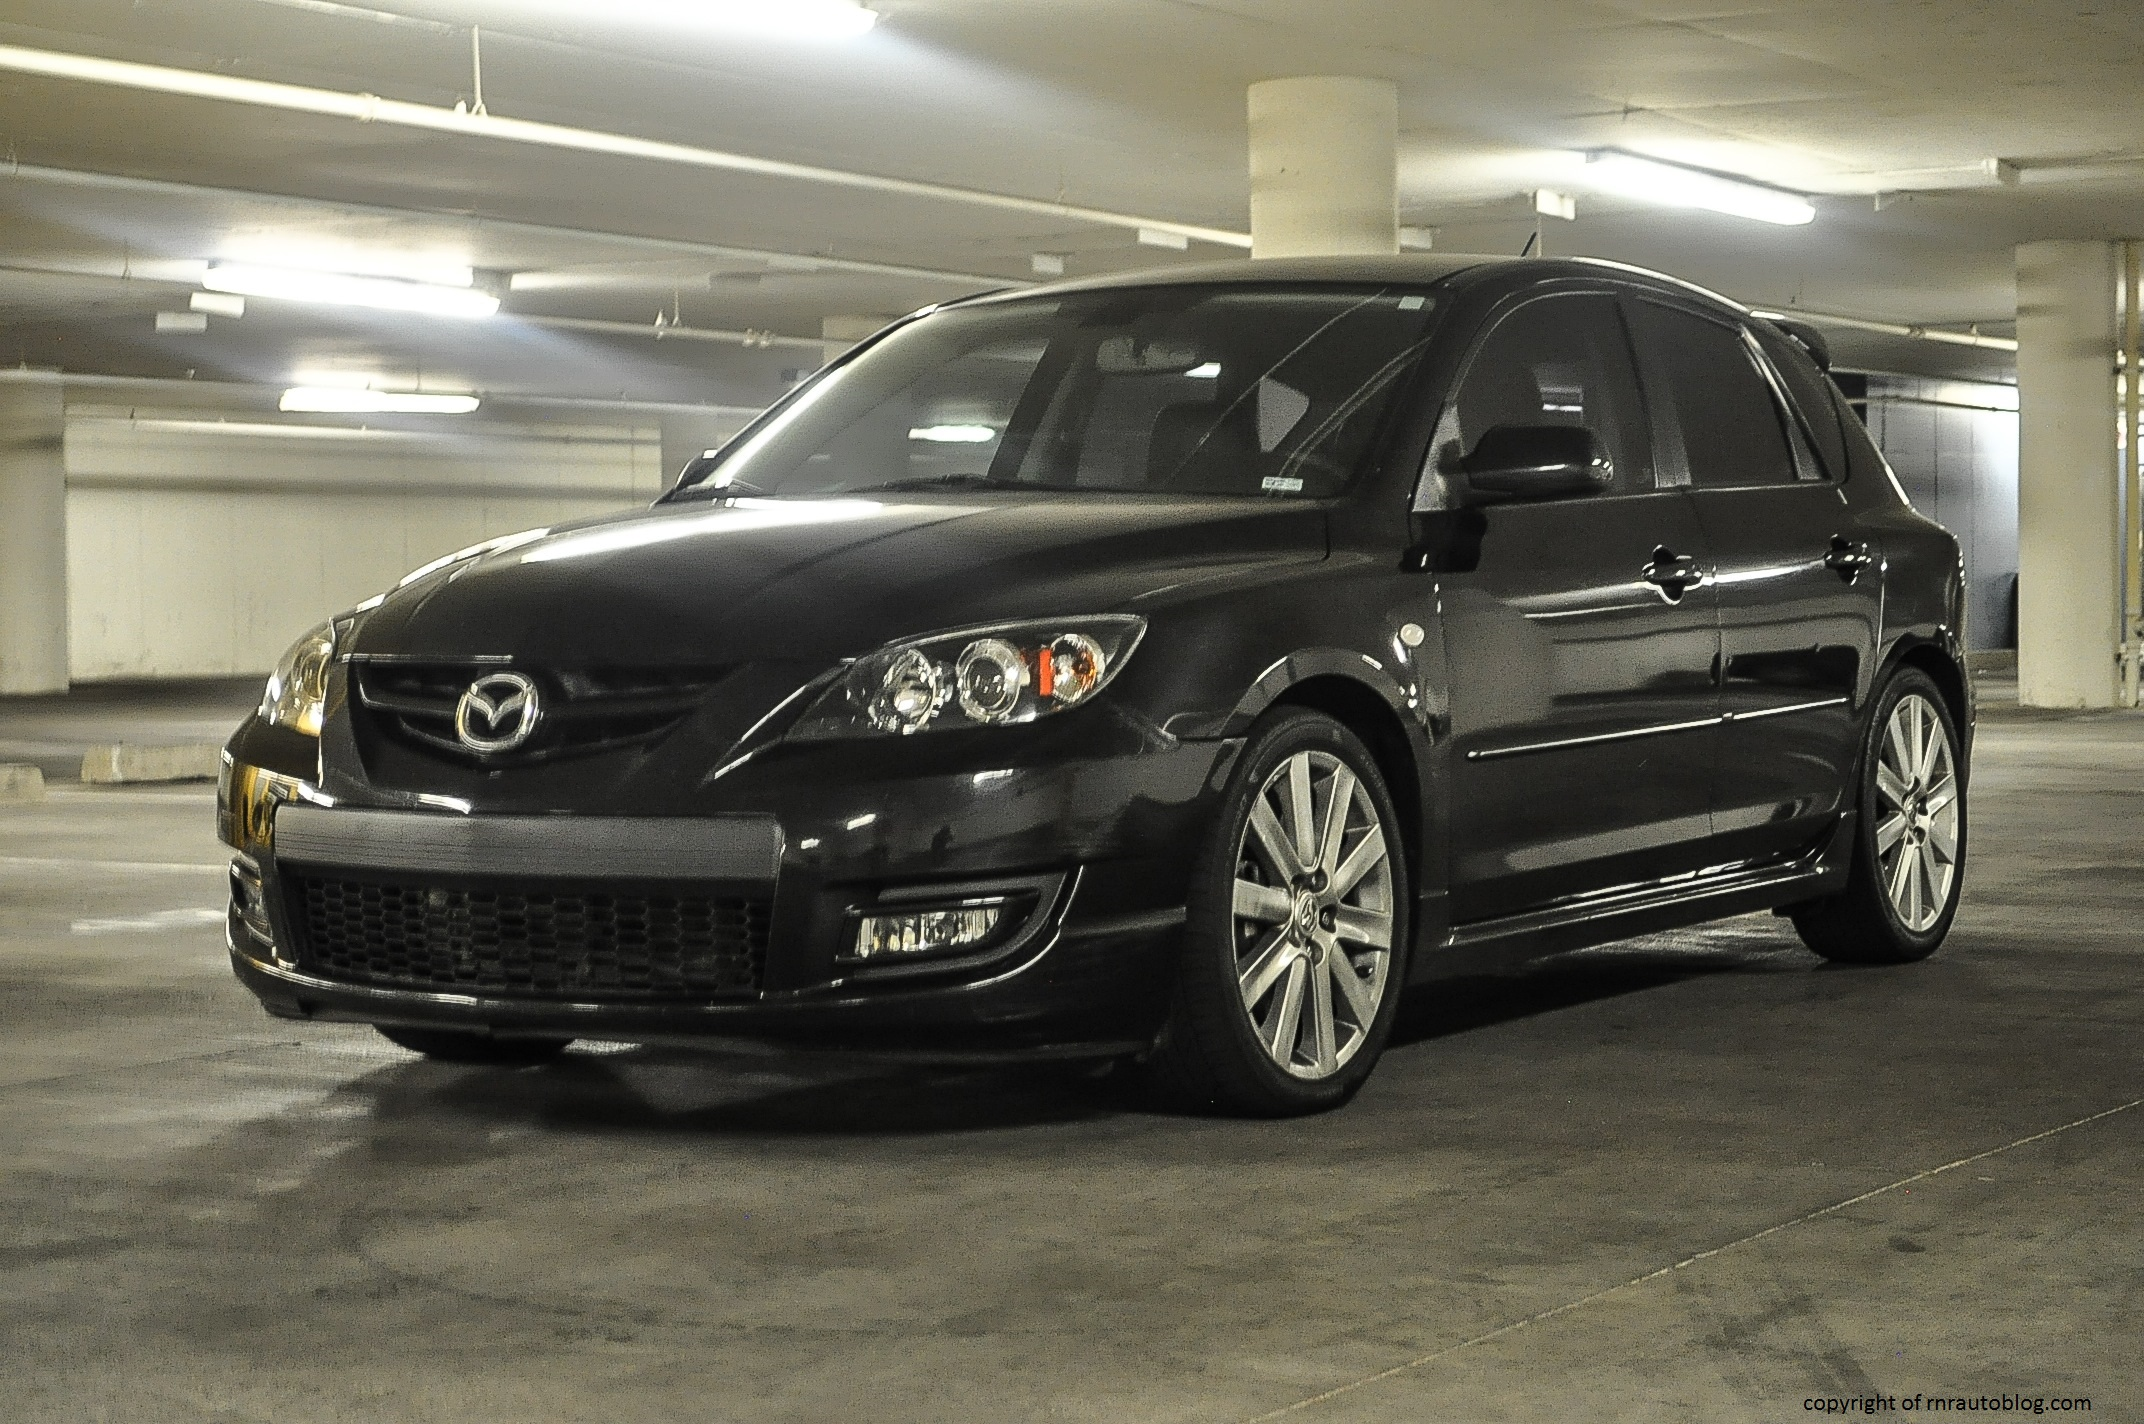 2008 mazdaspeed3 review rnr automotive blog. Black Bedroom Furniture Sets. Home Design Ideas